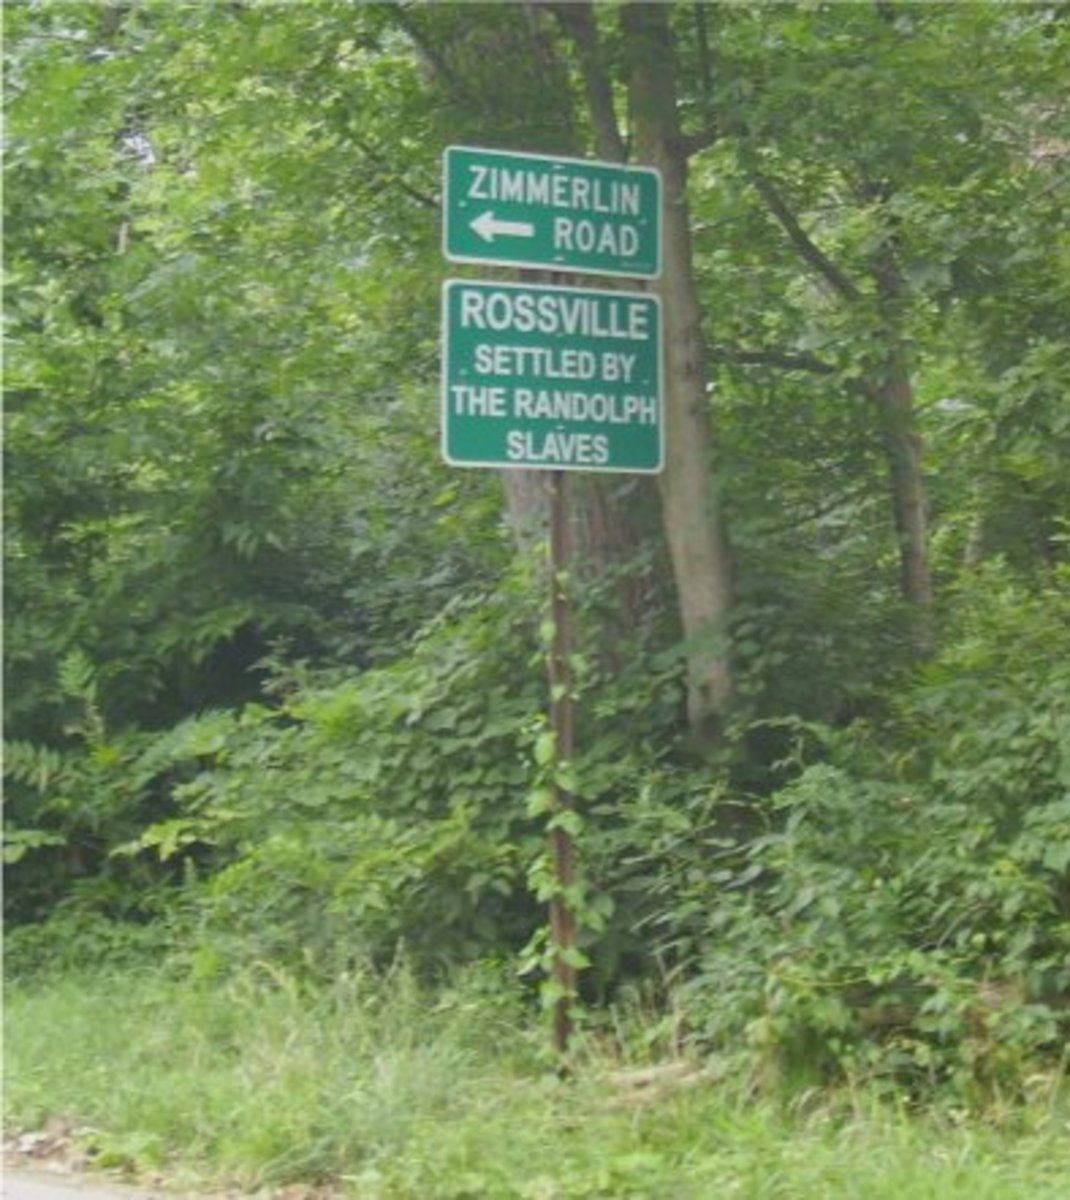 Present day sign, showing the location of Rossville and Jackson Cemetery in Piqua, Ohio